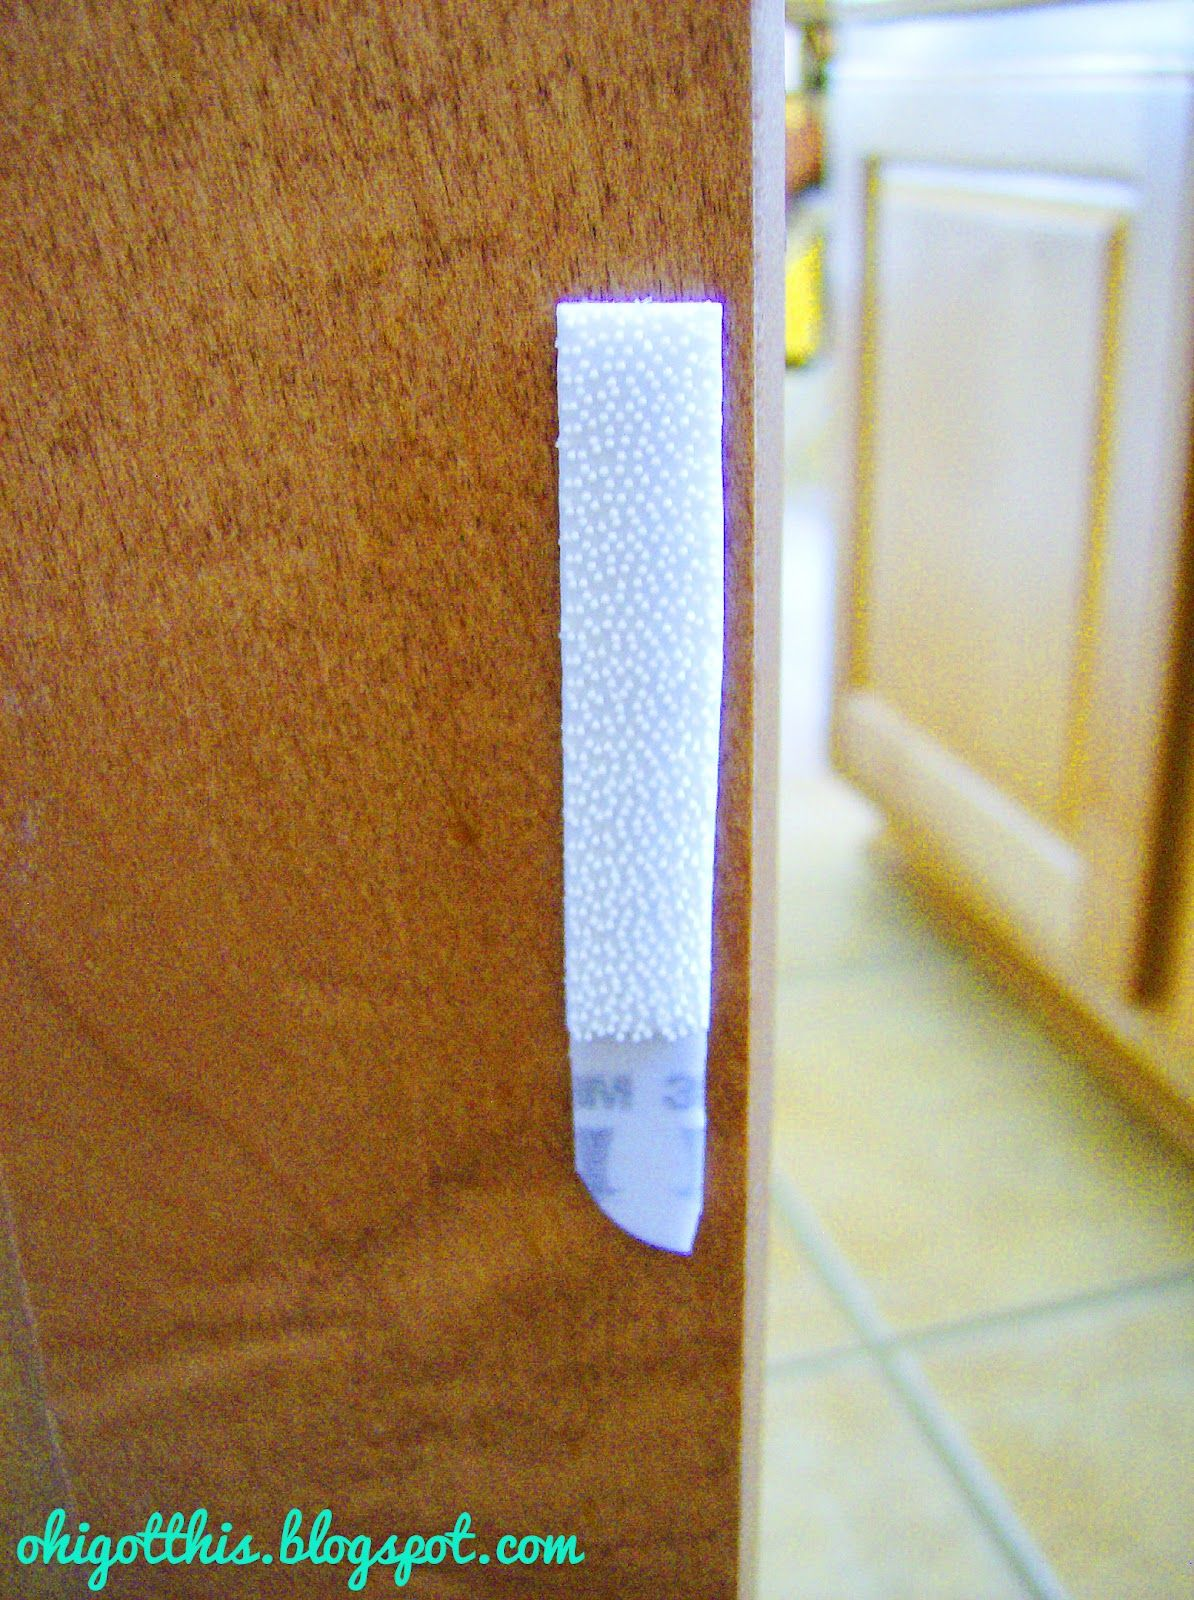 Baby Proof Kitchen Cabinets Velcro Cabinet Doors Less Annoying And More Cheap Baby Proofing